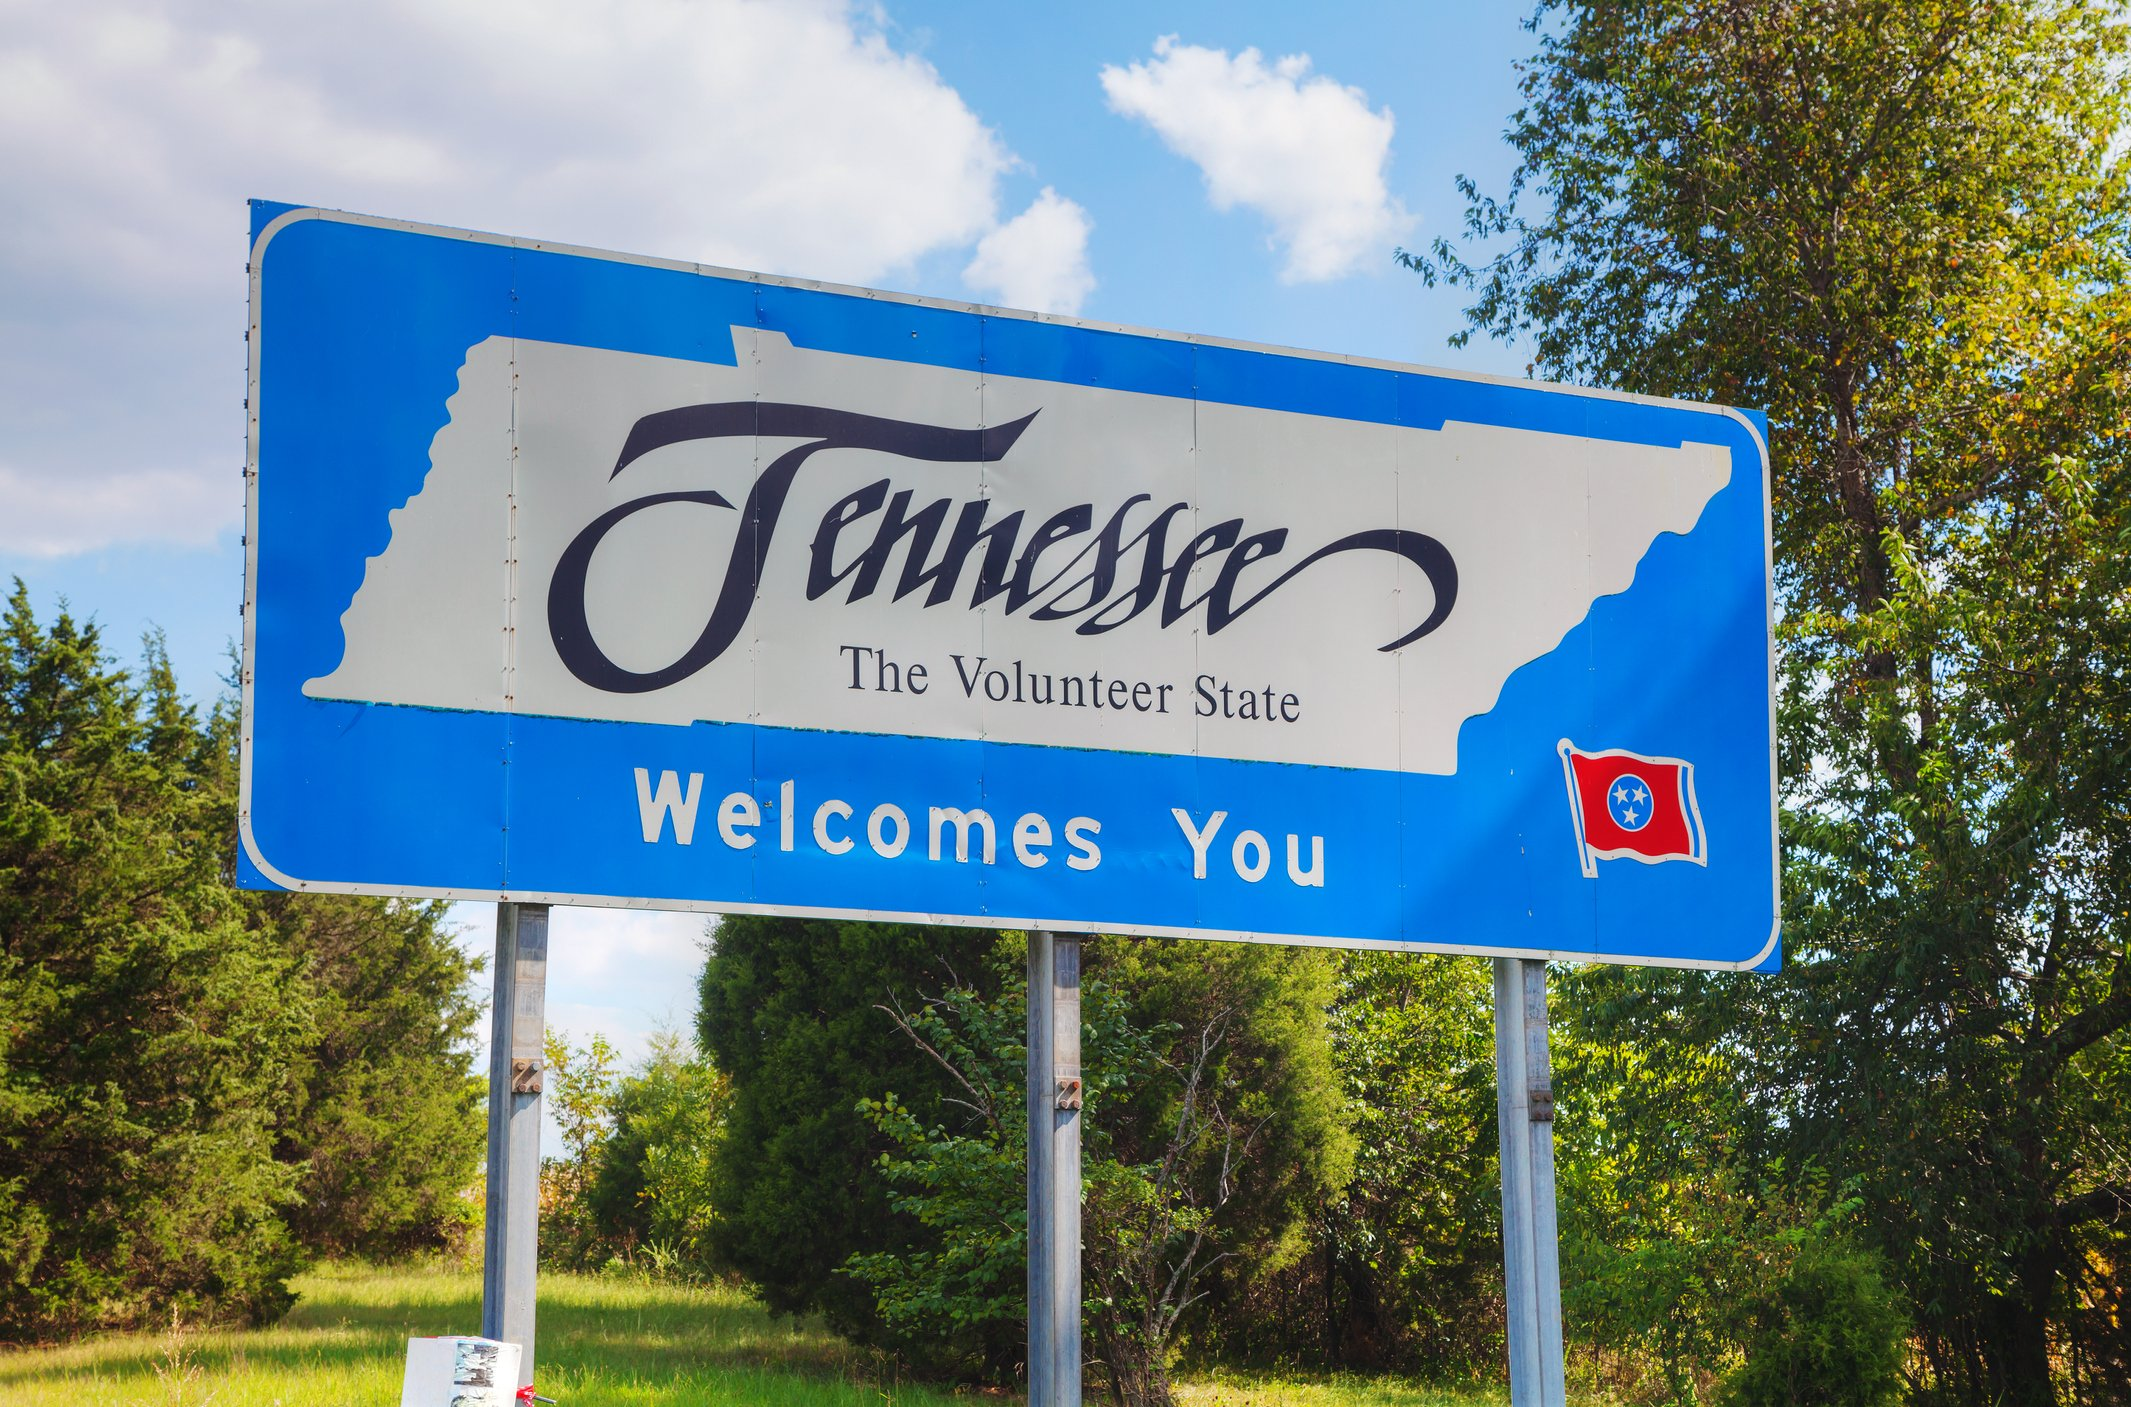 Slide 43 of 51: Tennessee is known for the volunteer state because during the War of 1812, thousands of men from Tennessee men willingly went to fight against the British.